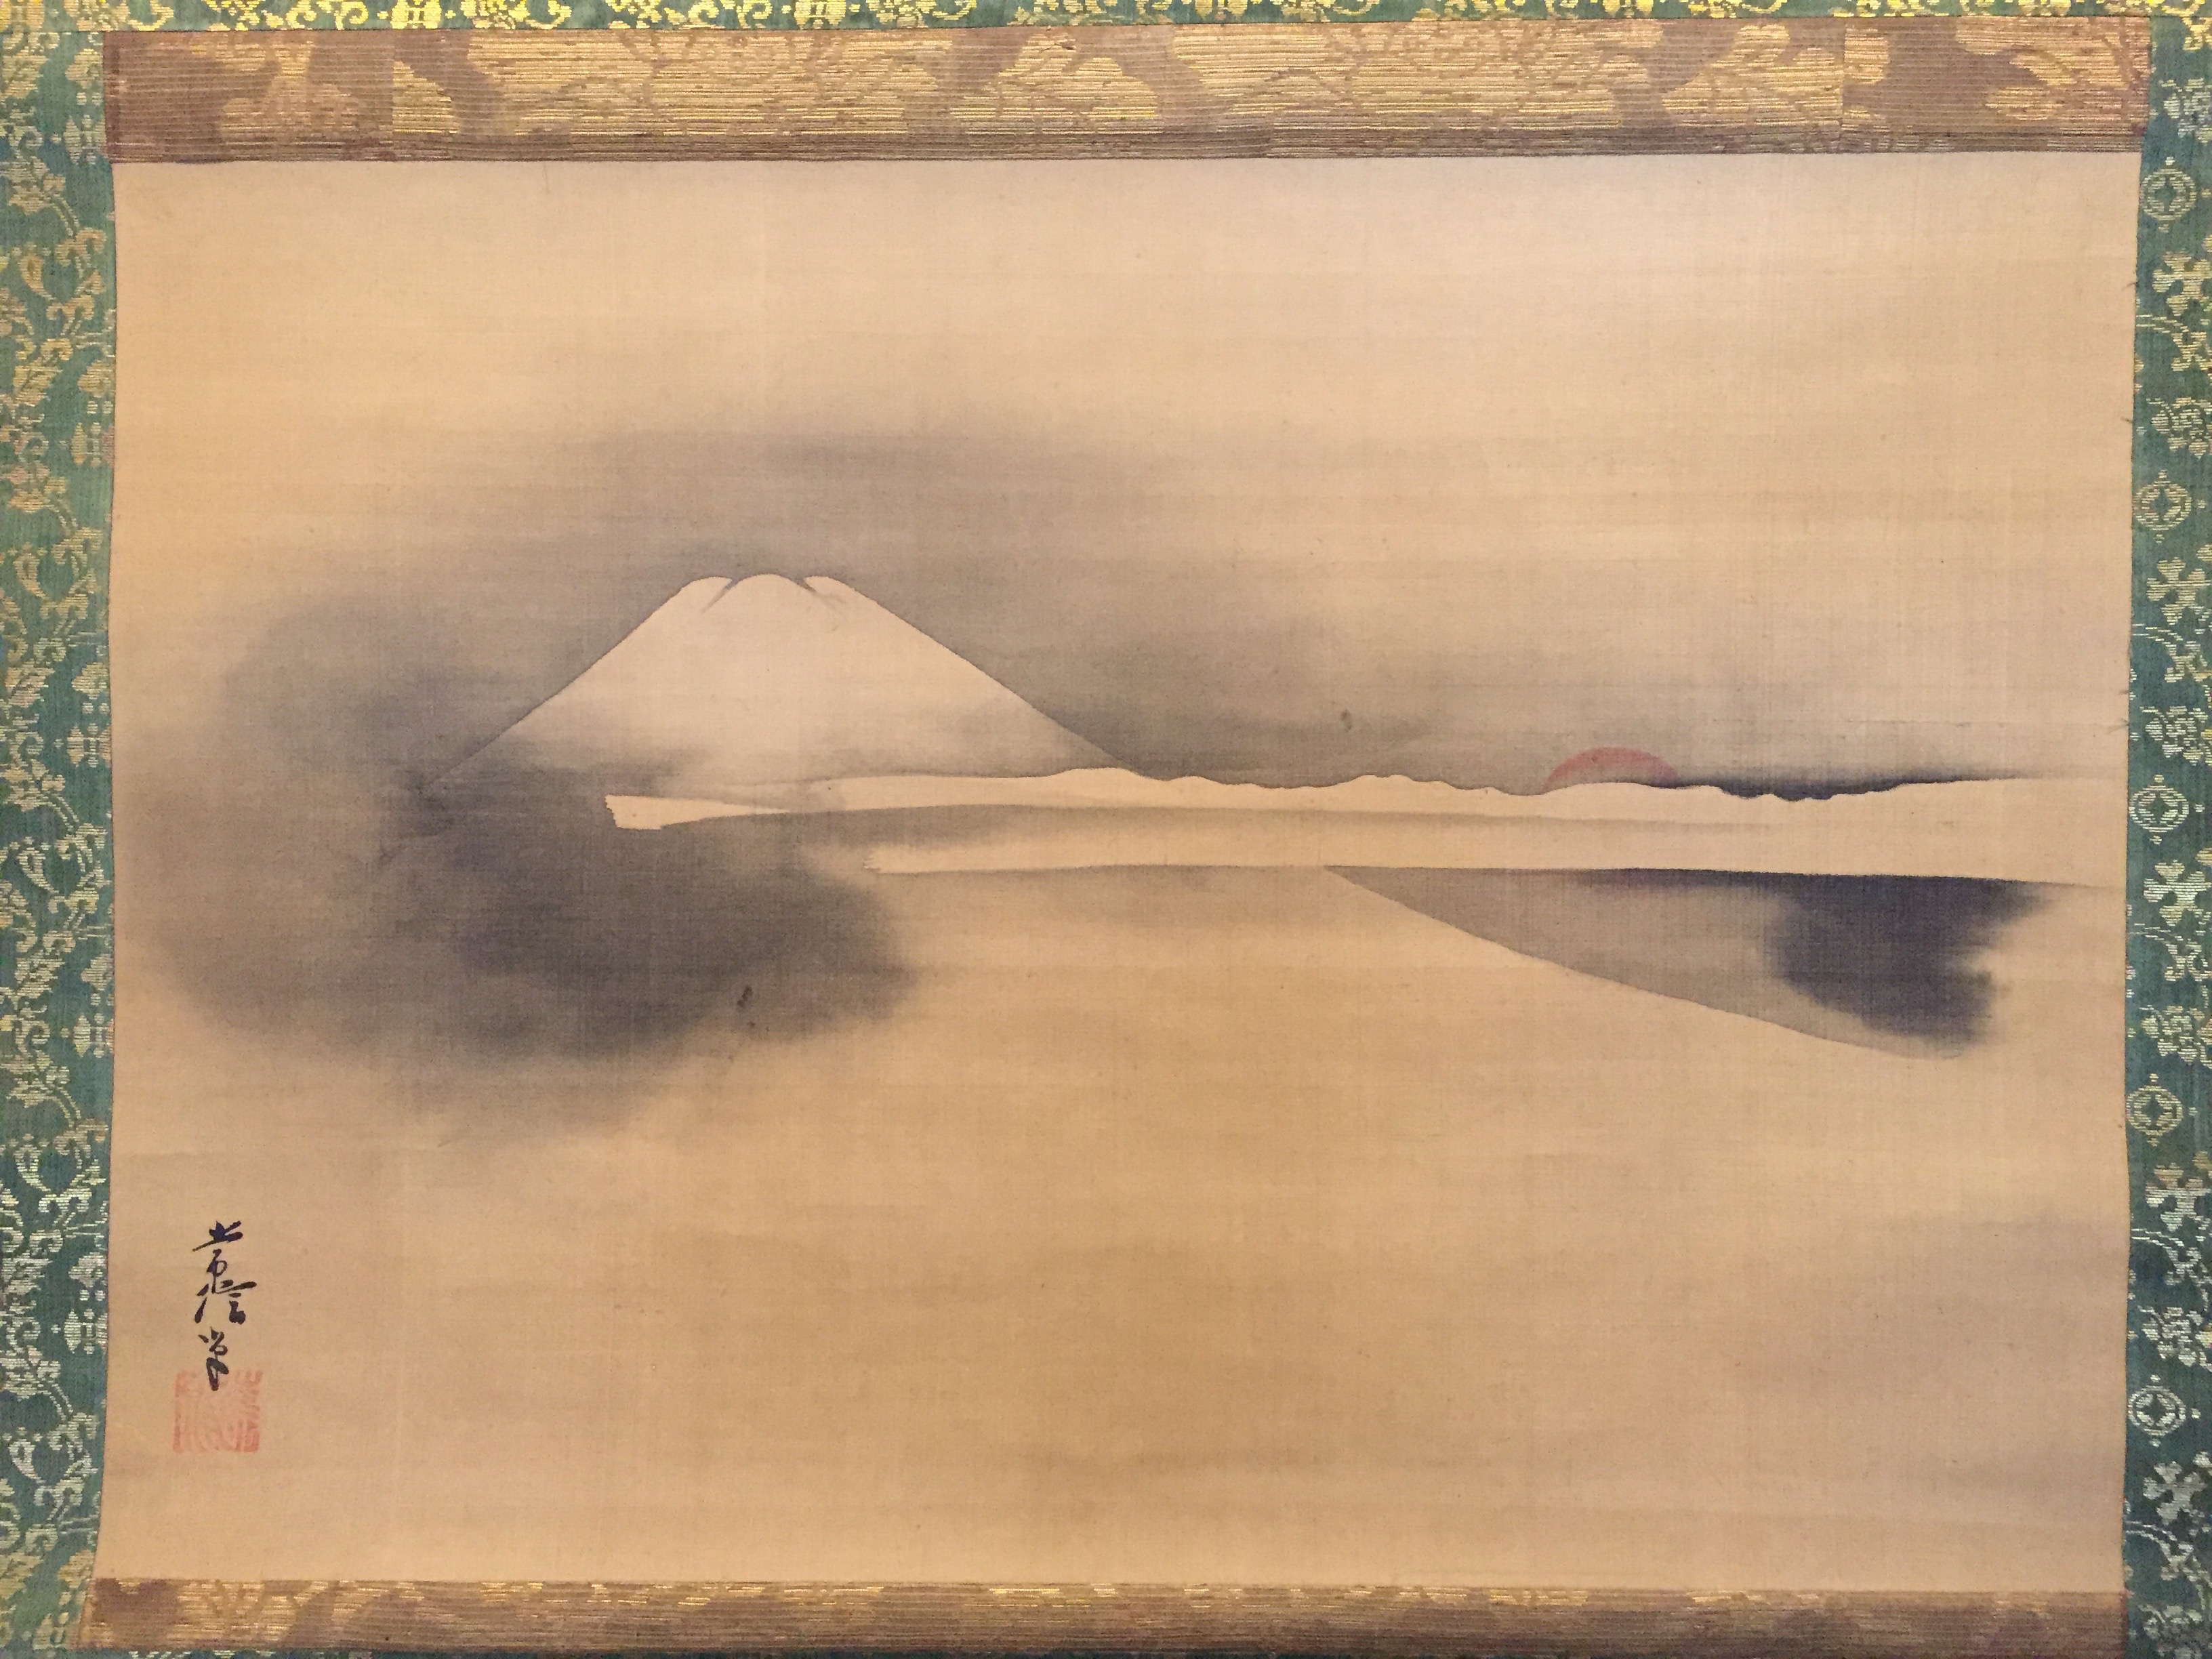 Painted on the silk in just one colour, the image of the daybreak brings out the floating shape of Mt. Fuji.